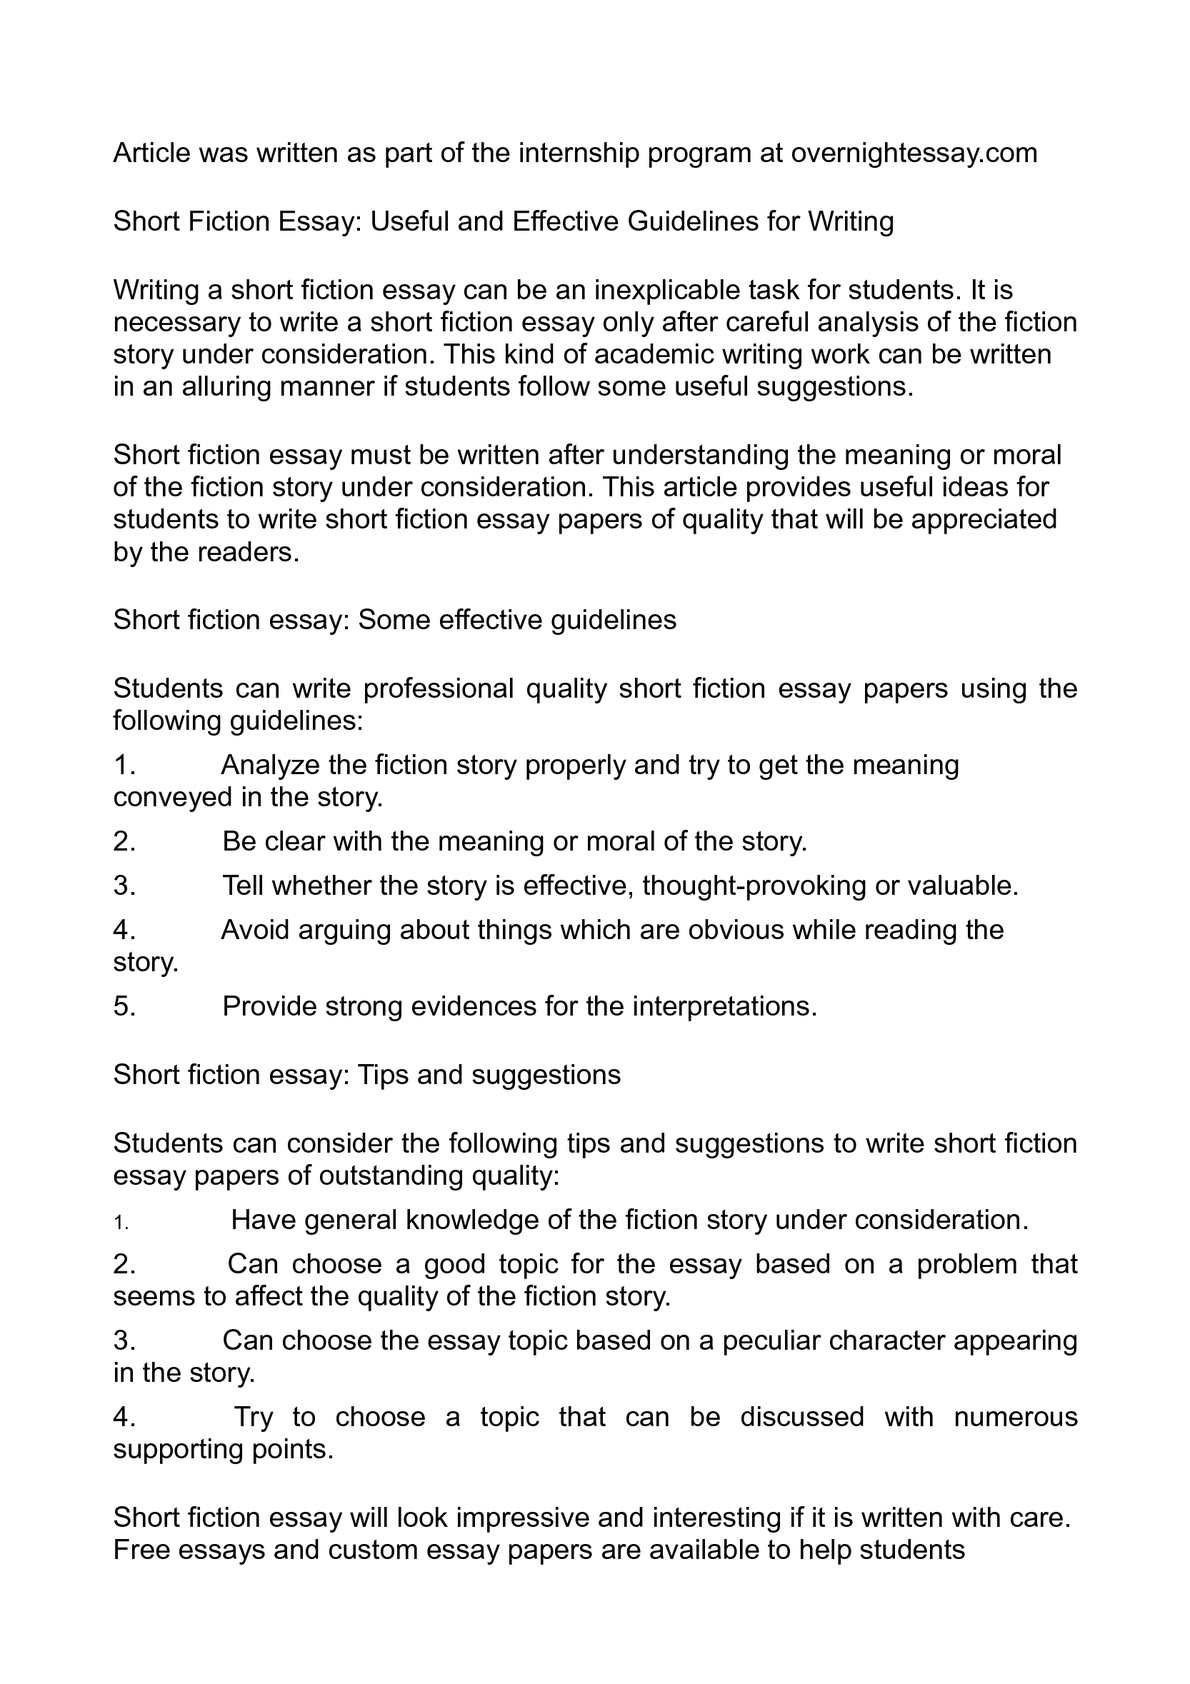 Calam o short fiction essay useful and effective guidelines for